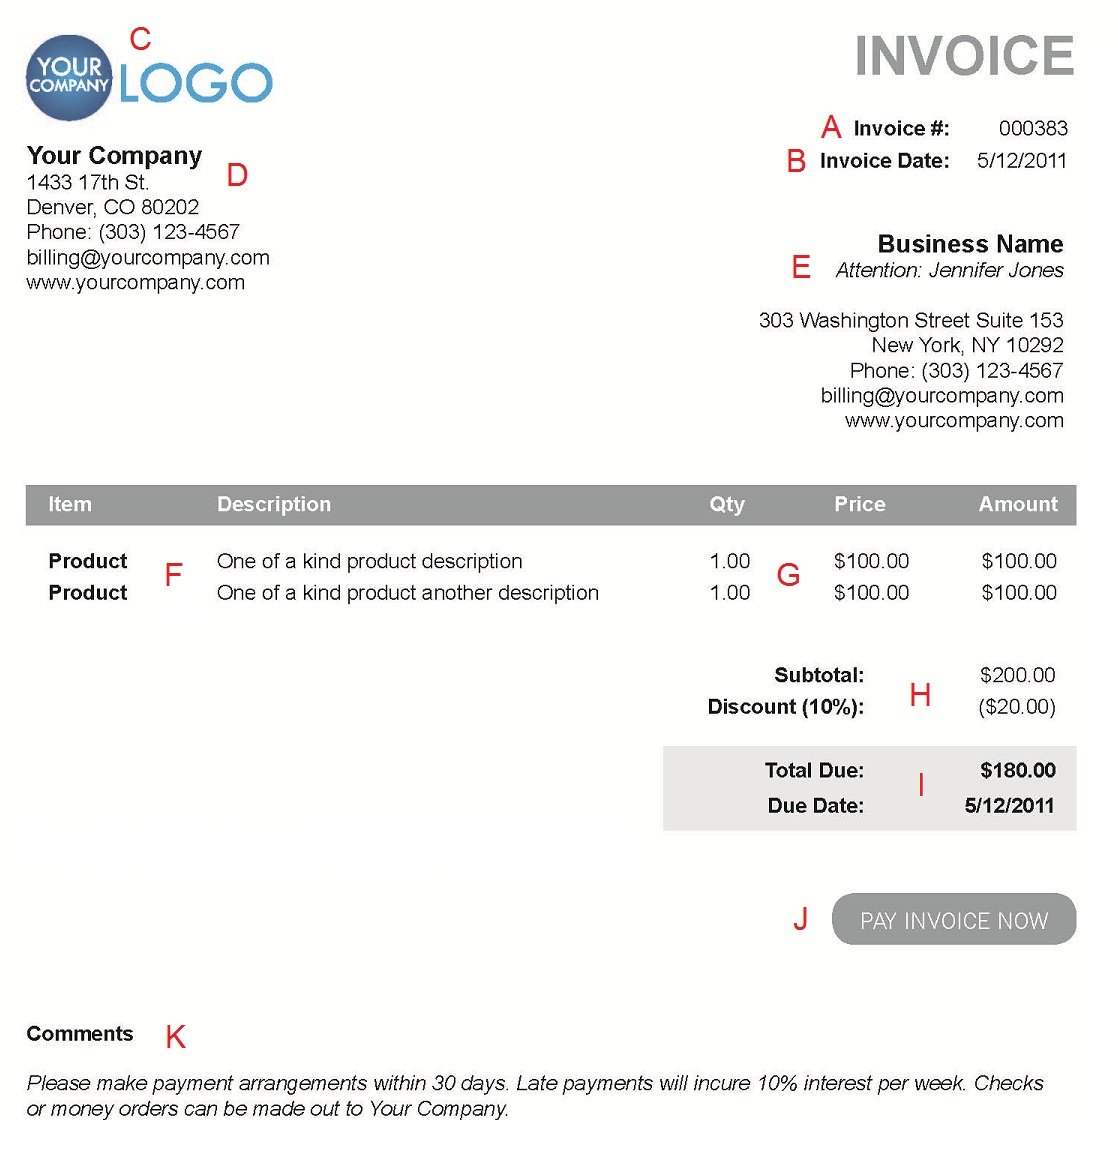 Reliefworkersus  Marvelous The  Different Sections Of An Electronic Payment Invoice With Entrancing A  With Divine Neat Receipts Vs Neatdesk Also Cash Receipt Accounting In Addition Receipt Form Pdf And Goodwill Receipt For Taxes As Well As How To Print Fake Receipts Additionally Request A Read Receipt From Paysimplecom With Reliefworkersus  Entrancing The  Different Sections Of An Electronic Payment Invoice With Divine A  And Marvelous Neat Receipts Vs Neatdesk Also Cash Receipt Accounting In Addition Receipt Form Pdf From Paysimplecom